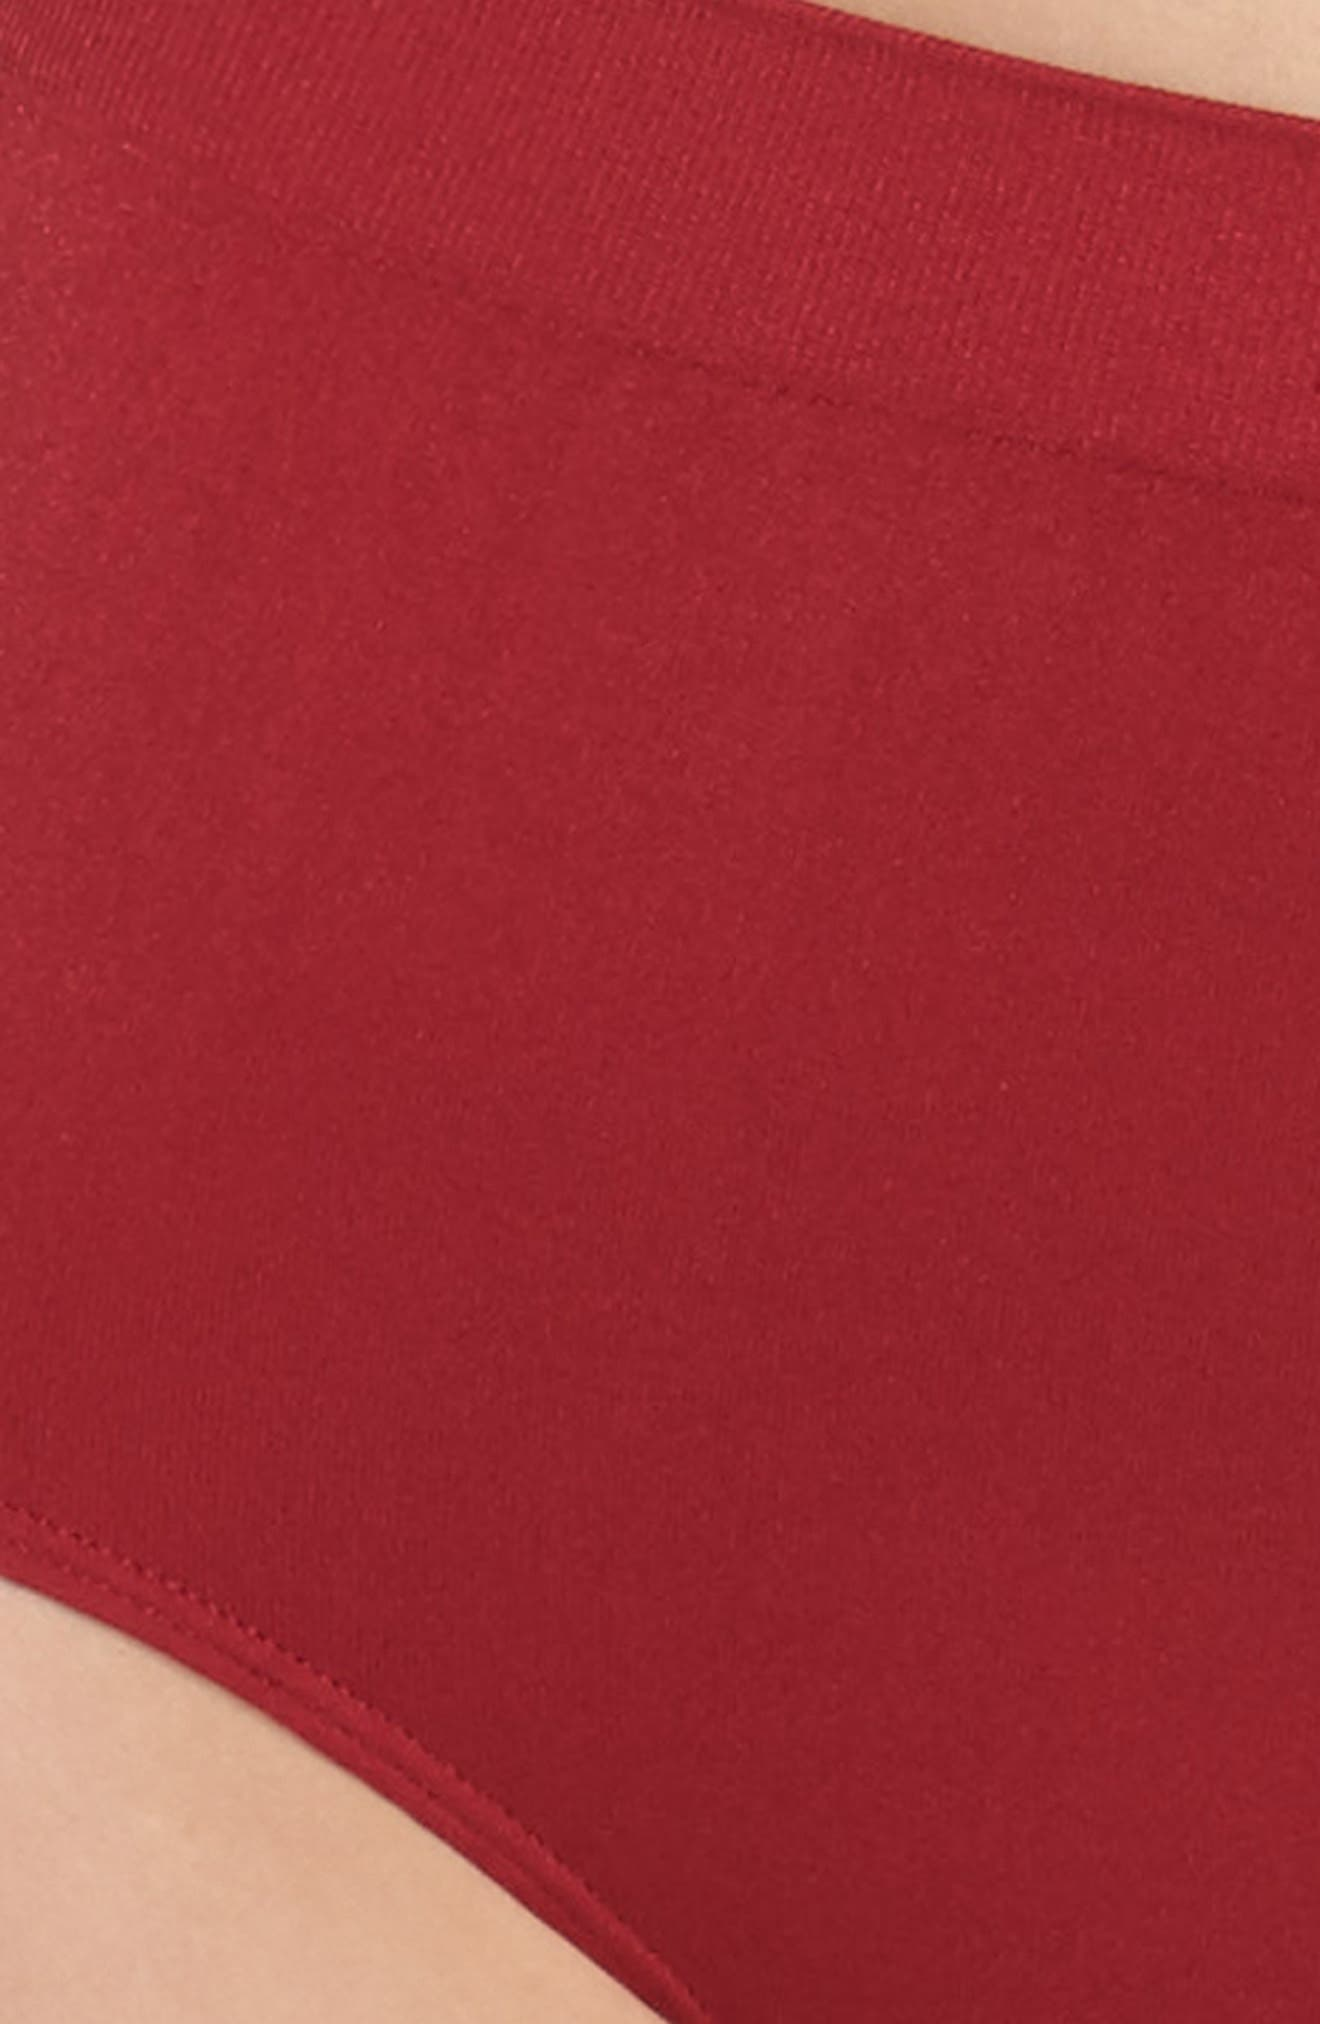 B Smooth Briefs,                             Alternate thumbnail 196, color,